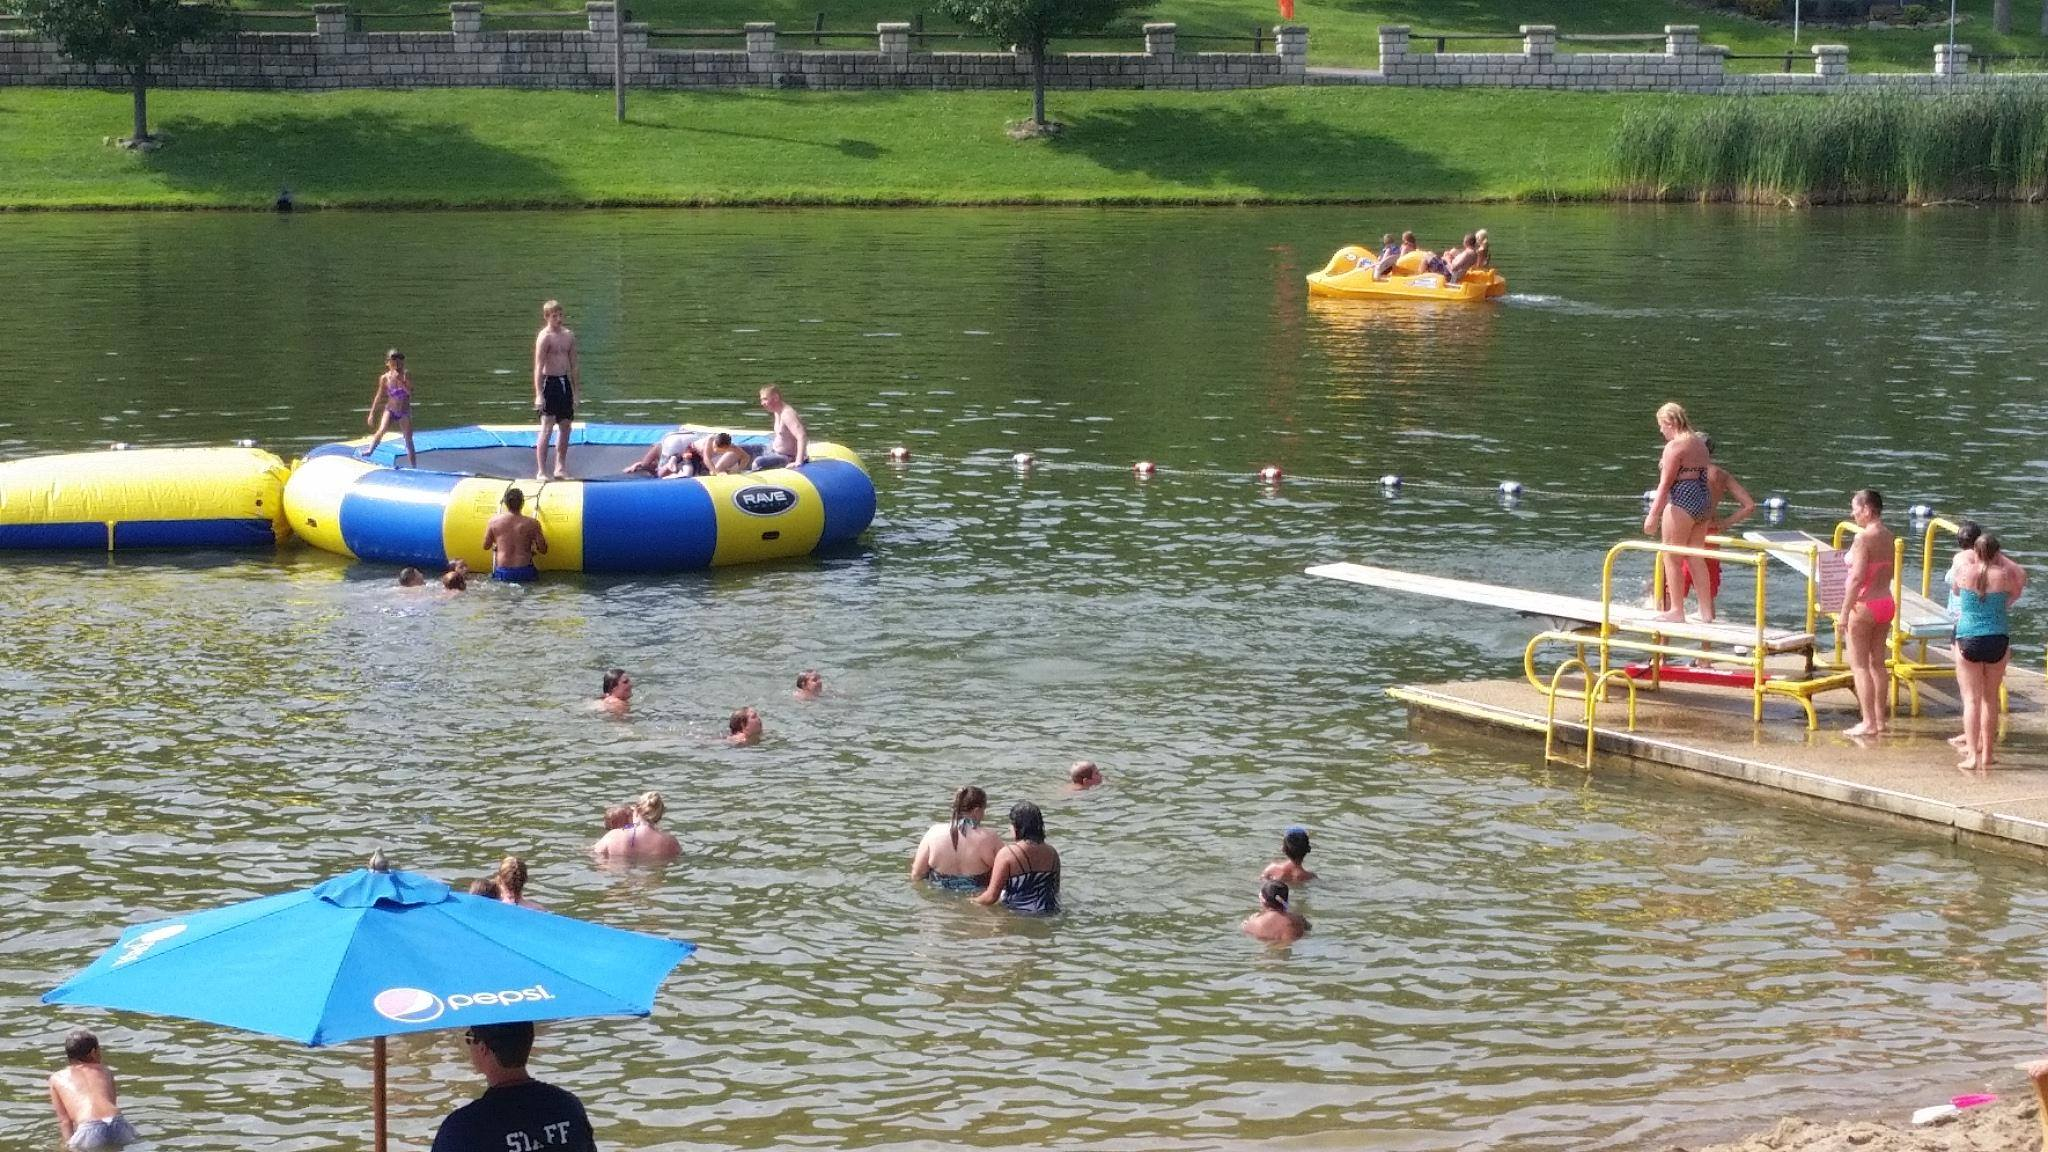 Tons of campers playing on water equipment in a lake